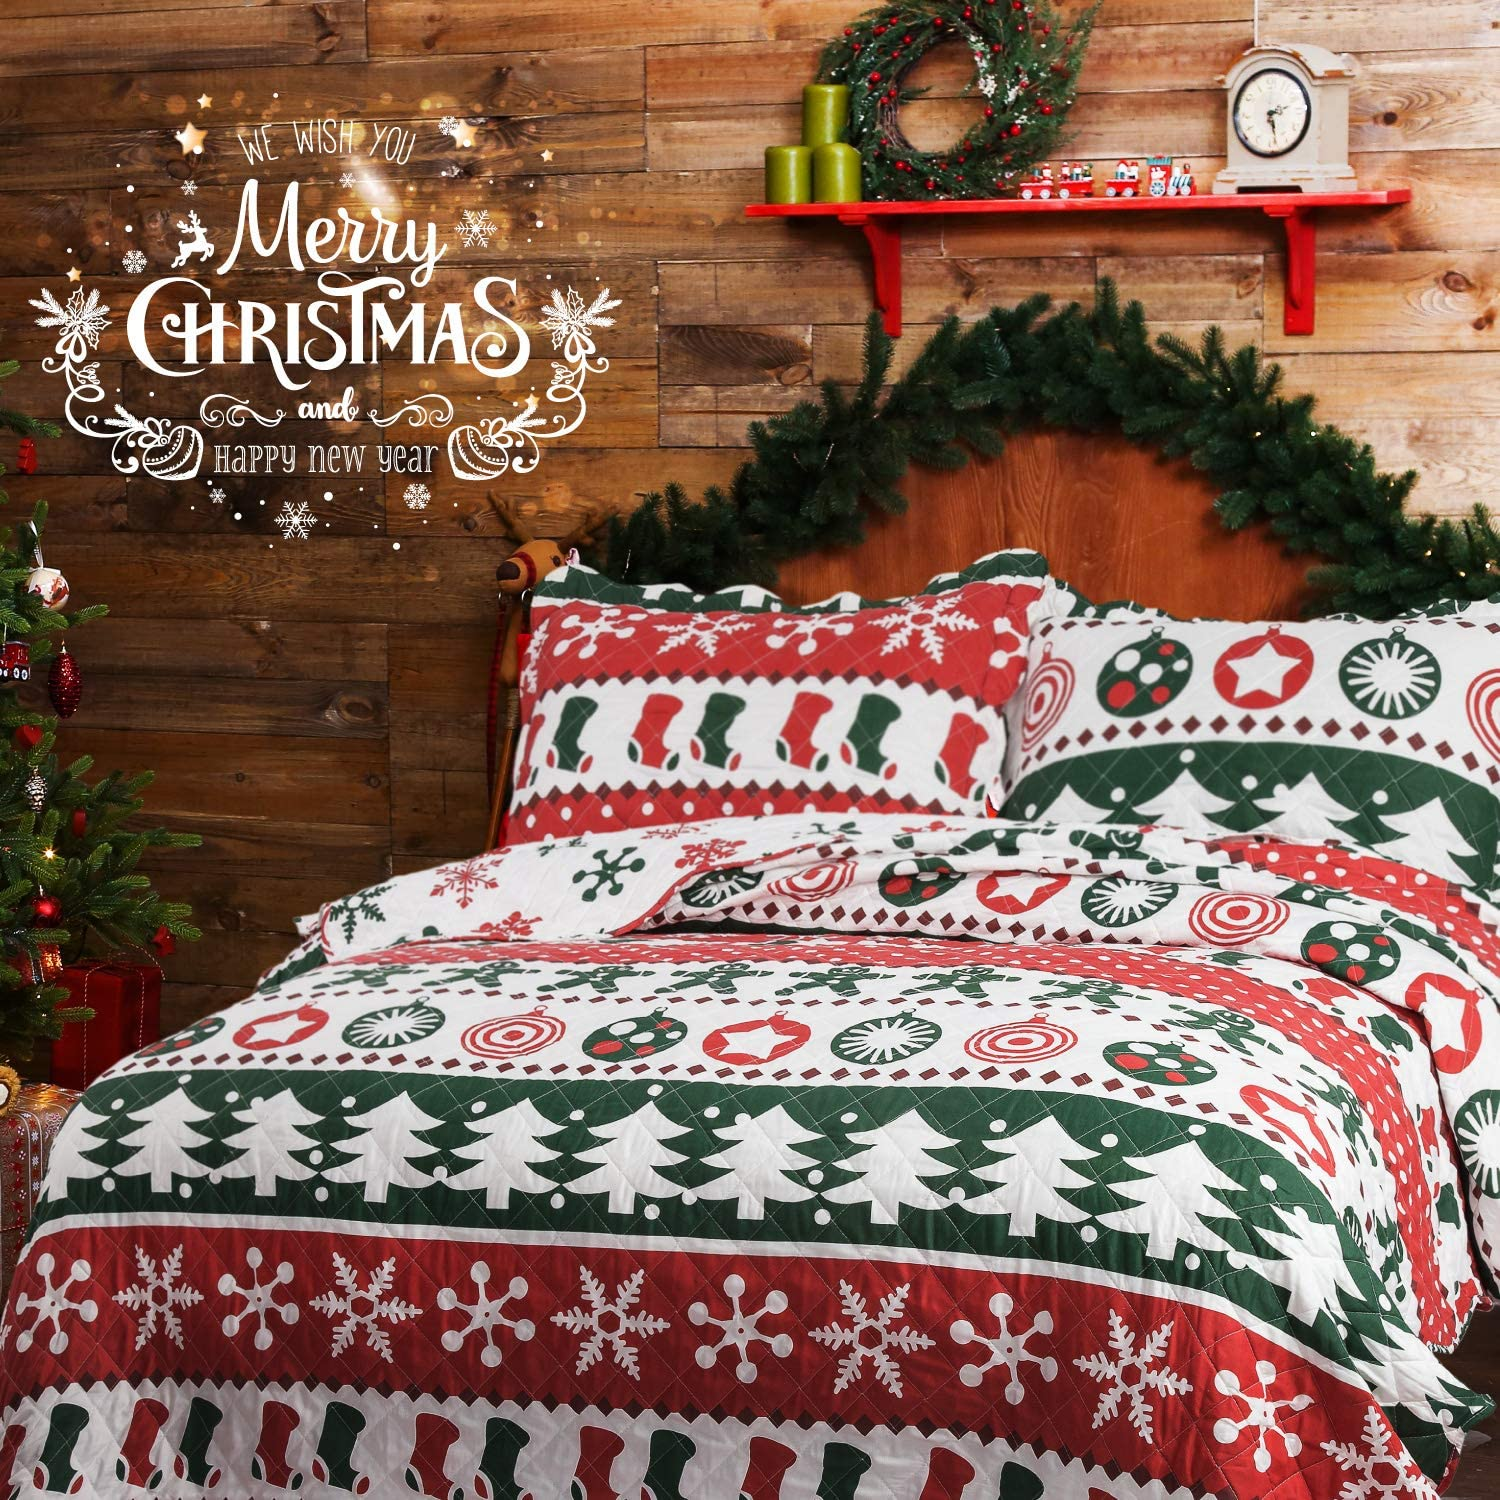 Bedsure Christmas Quilt Set Full/Queen Size (90x96 inches) - Gingerbread Man Pattern - Soft Microfiber Lightweight Coverlet Bedspread for All Season